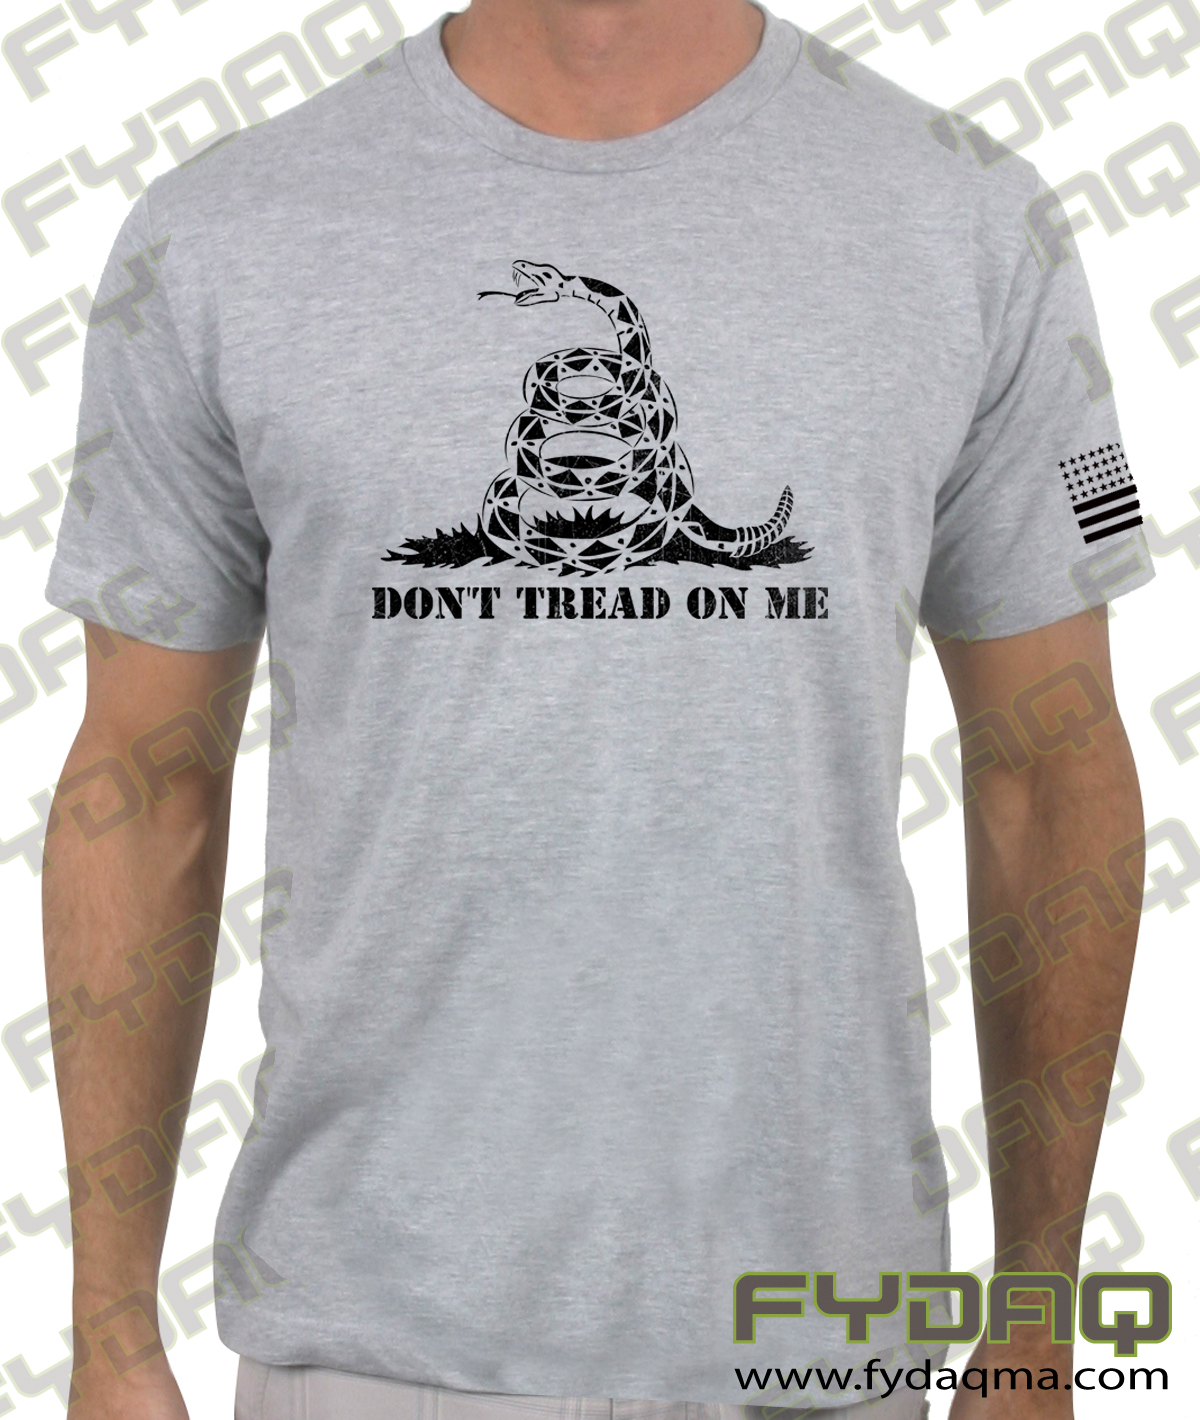 gadsden-flag-don't-tread-on-me-heather-grey-tshirt-fydaq